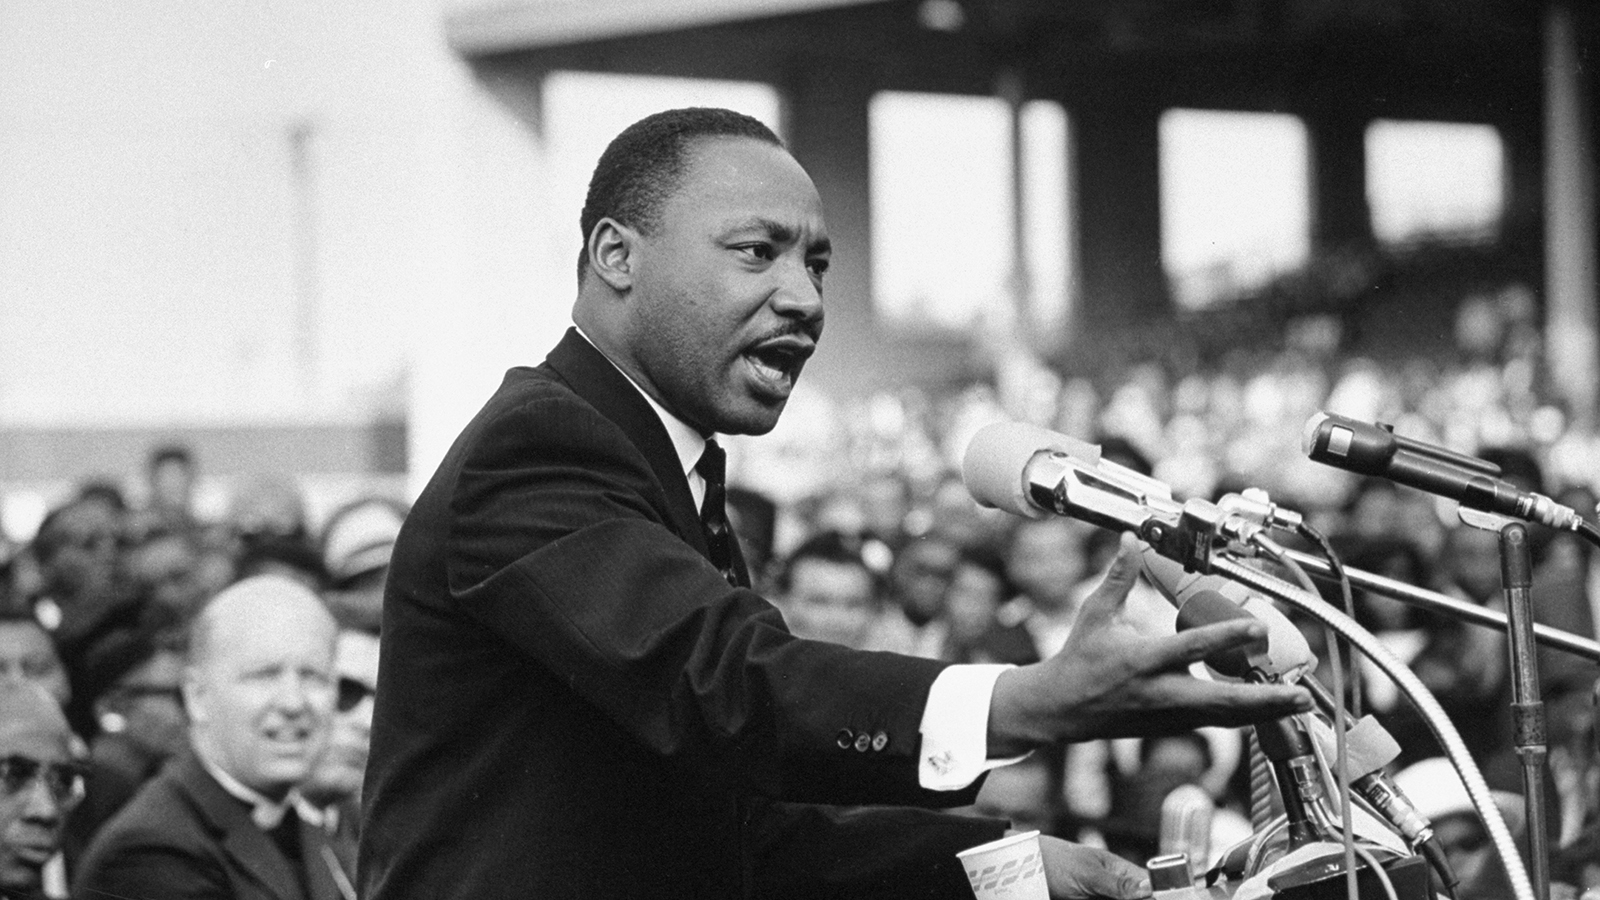 Martin Luther King Jr., theologian, pastor & civil rights activist